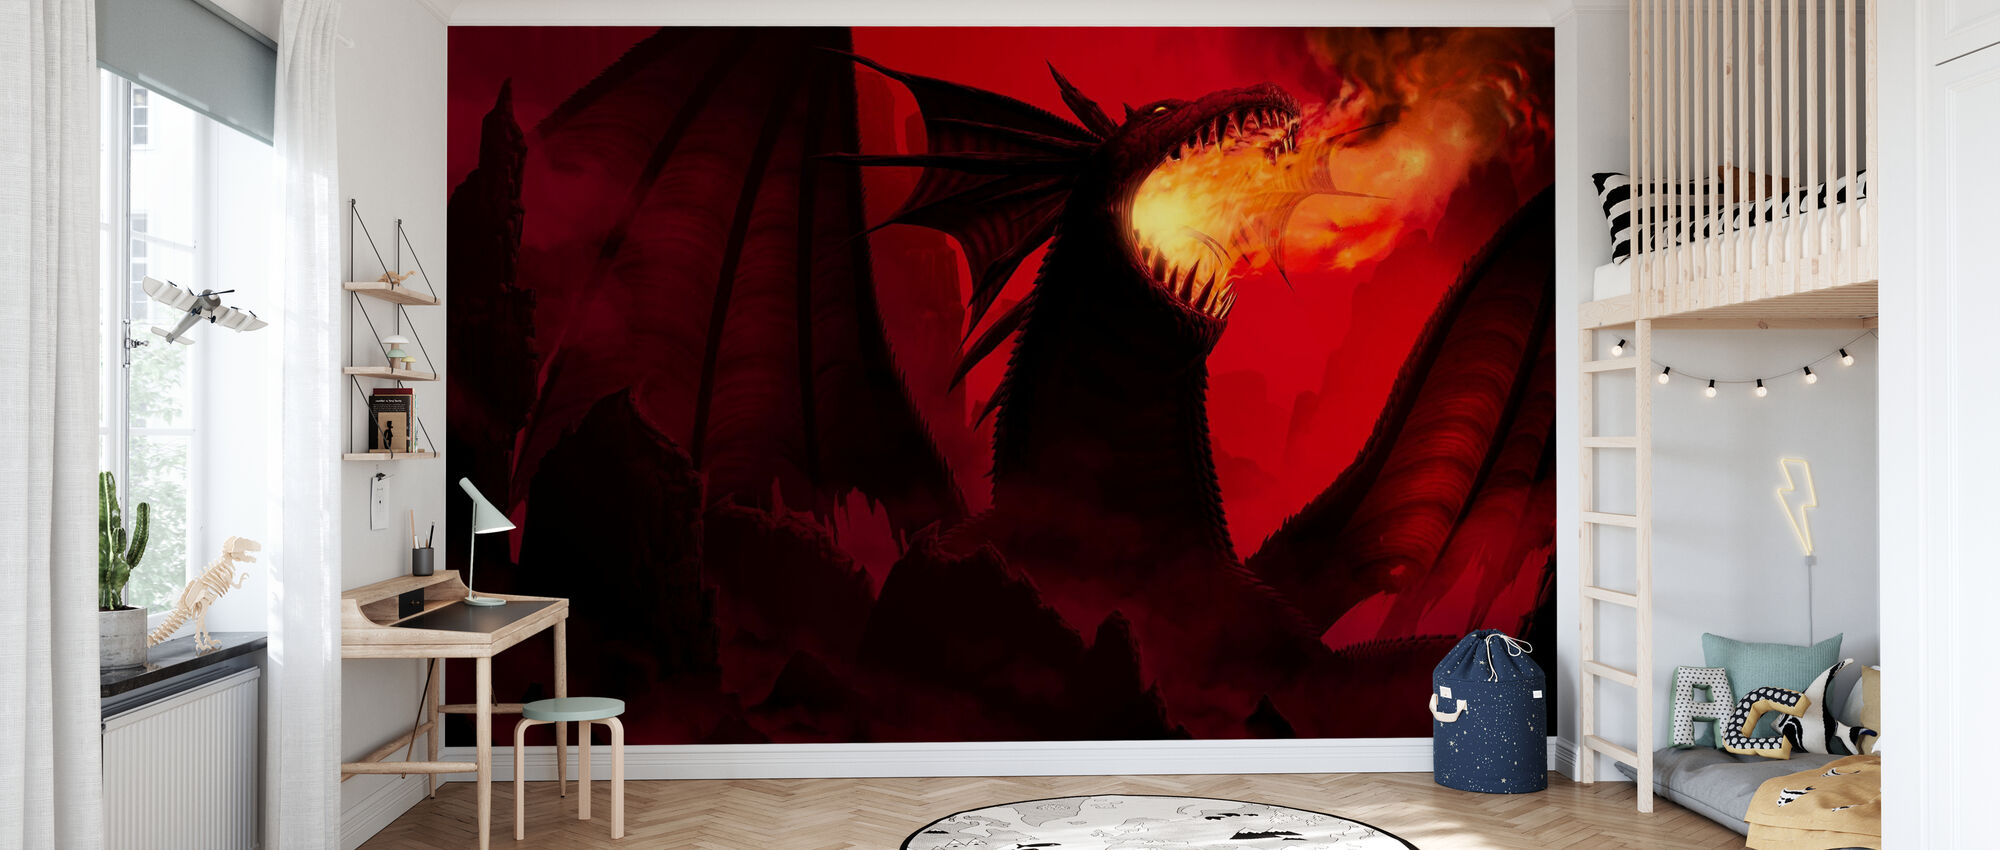 Dragon in Red - Wallpaper - Kids Room